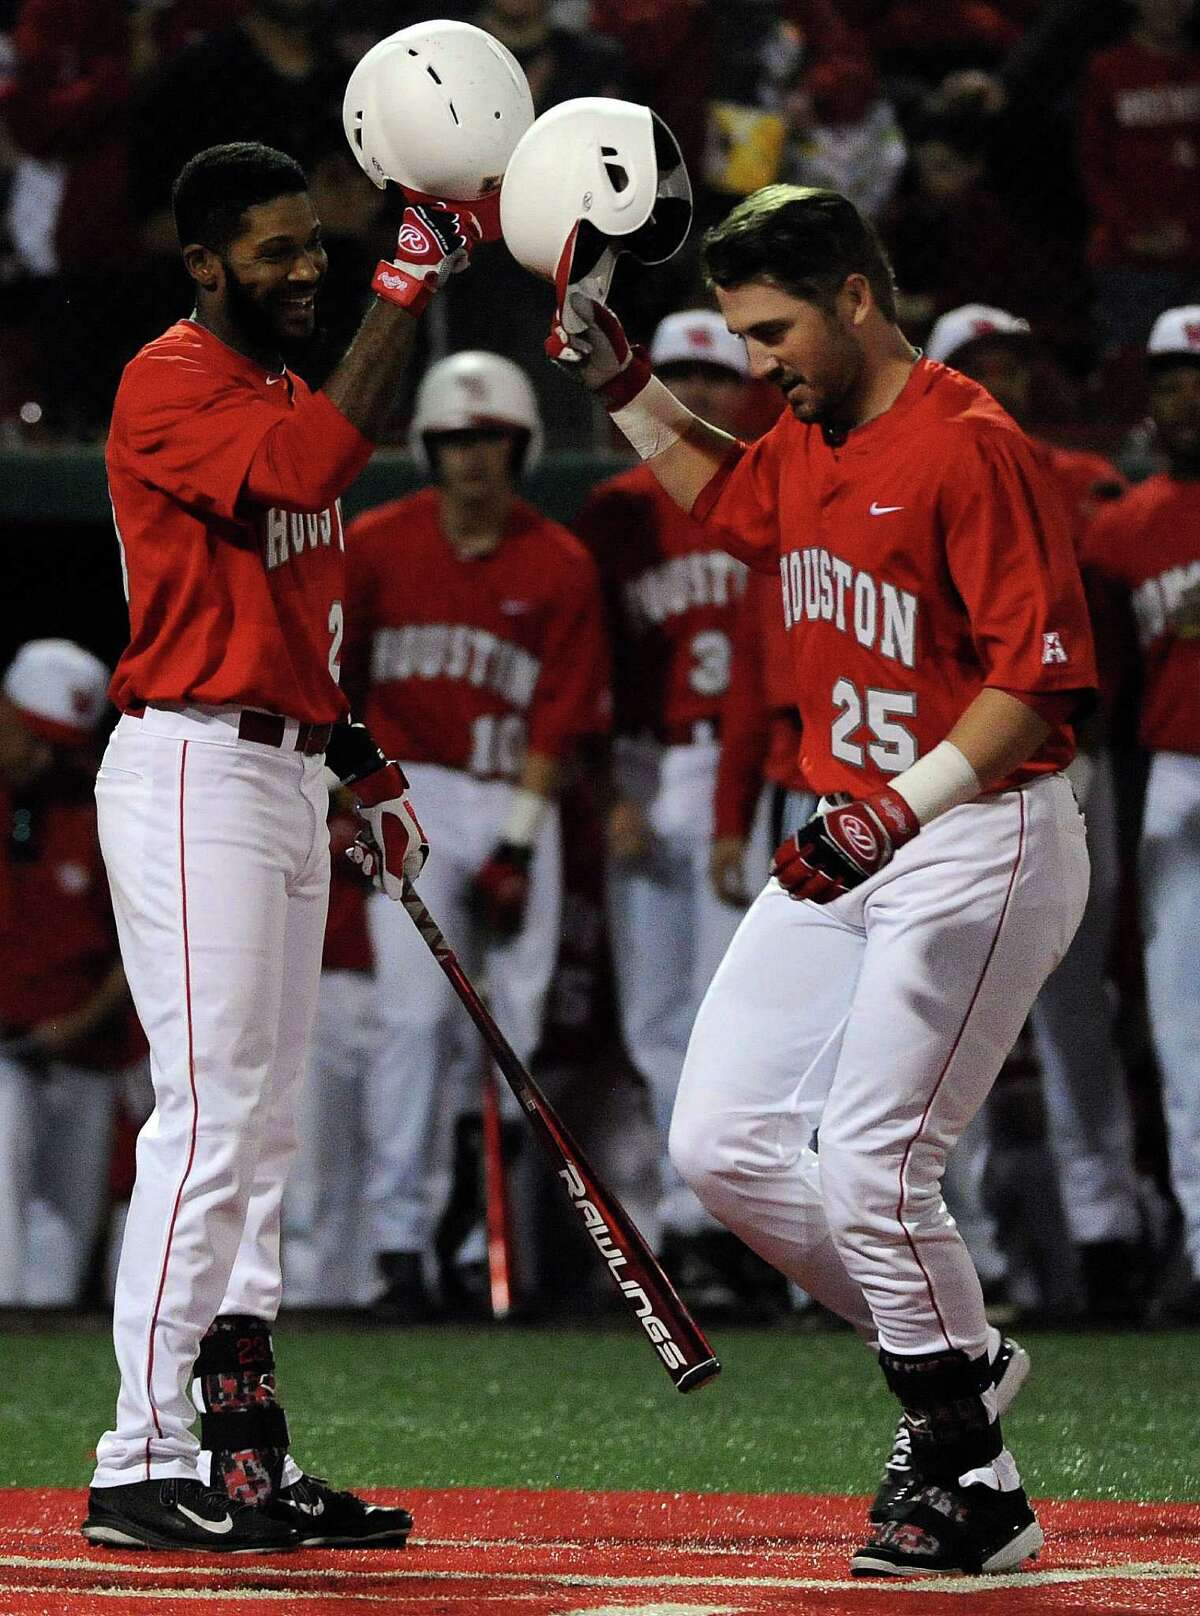 Houston first baseman Chris Iriart, right, joined hurlers Kyle Dowdy and David Longville as former California junior college stars who became Cougars.